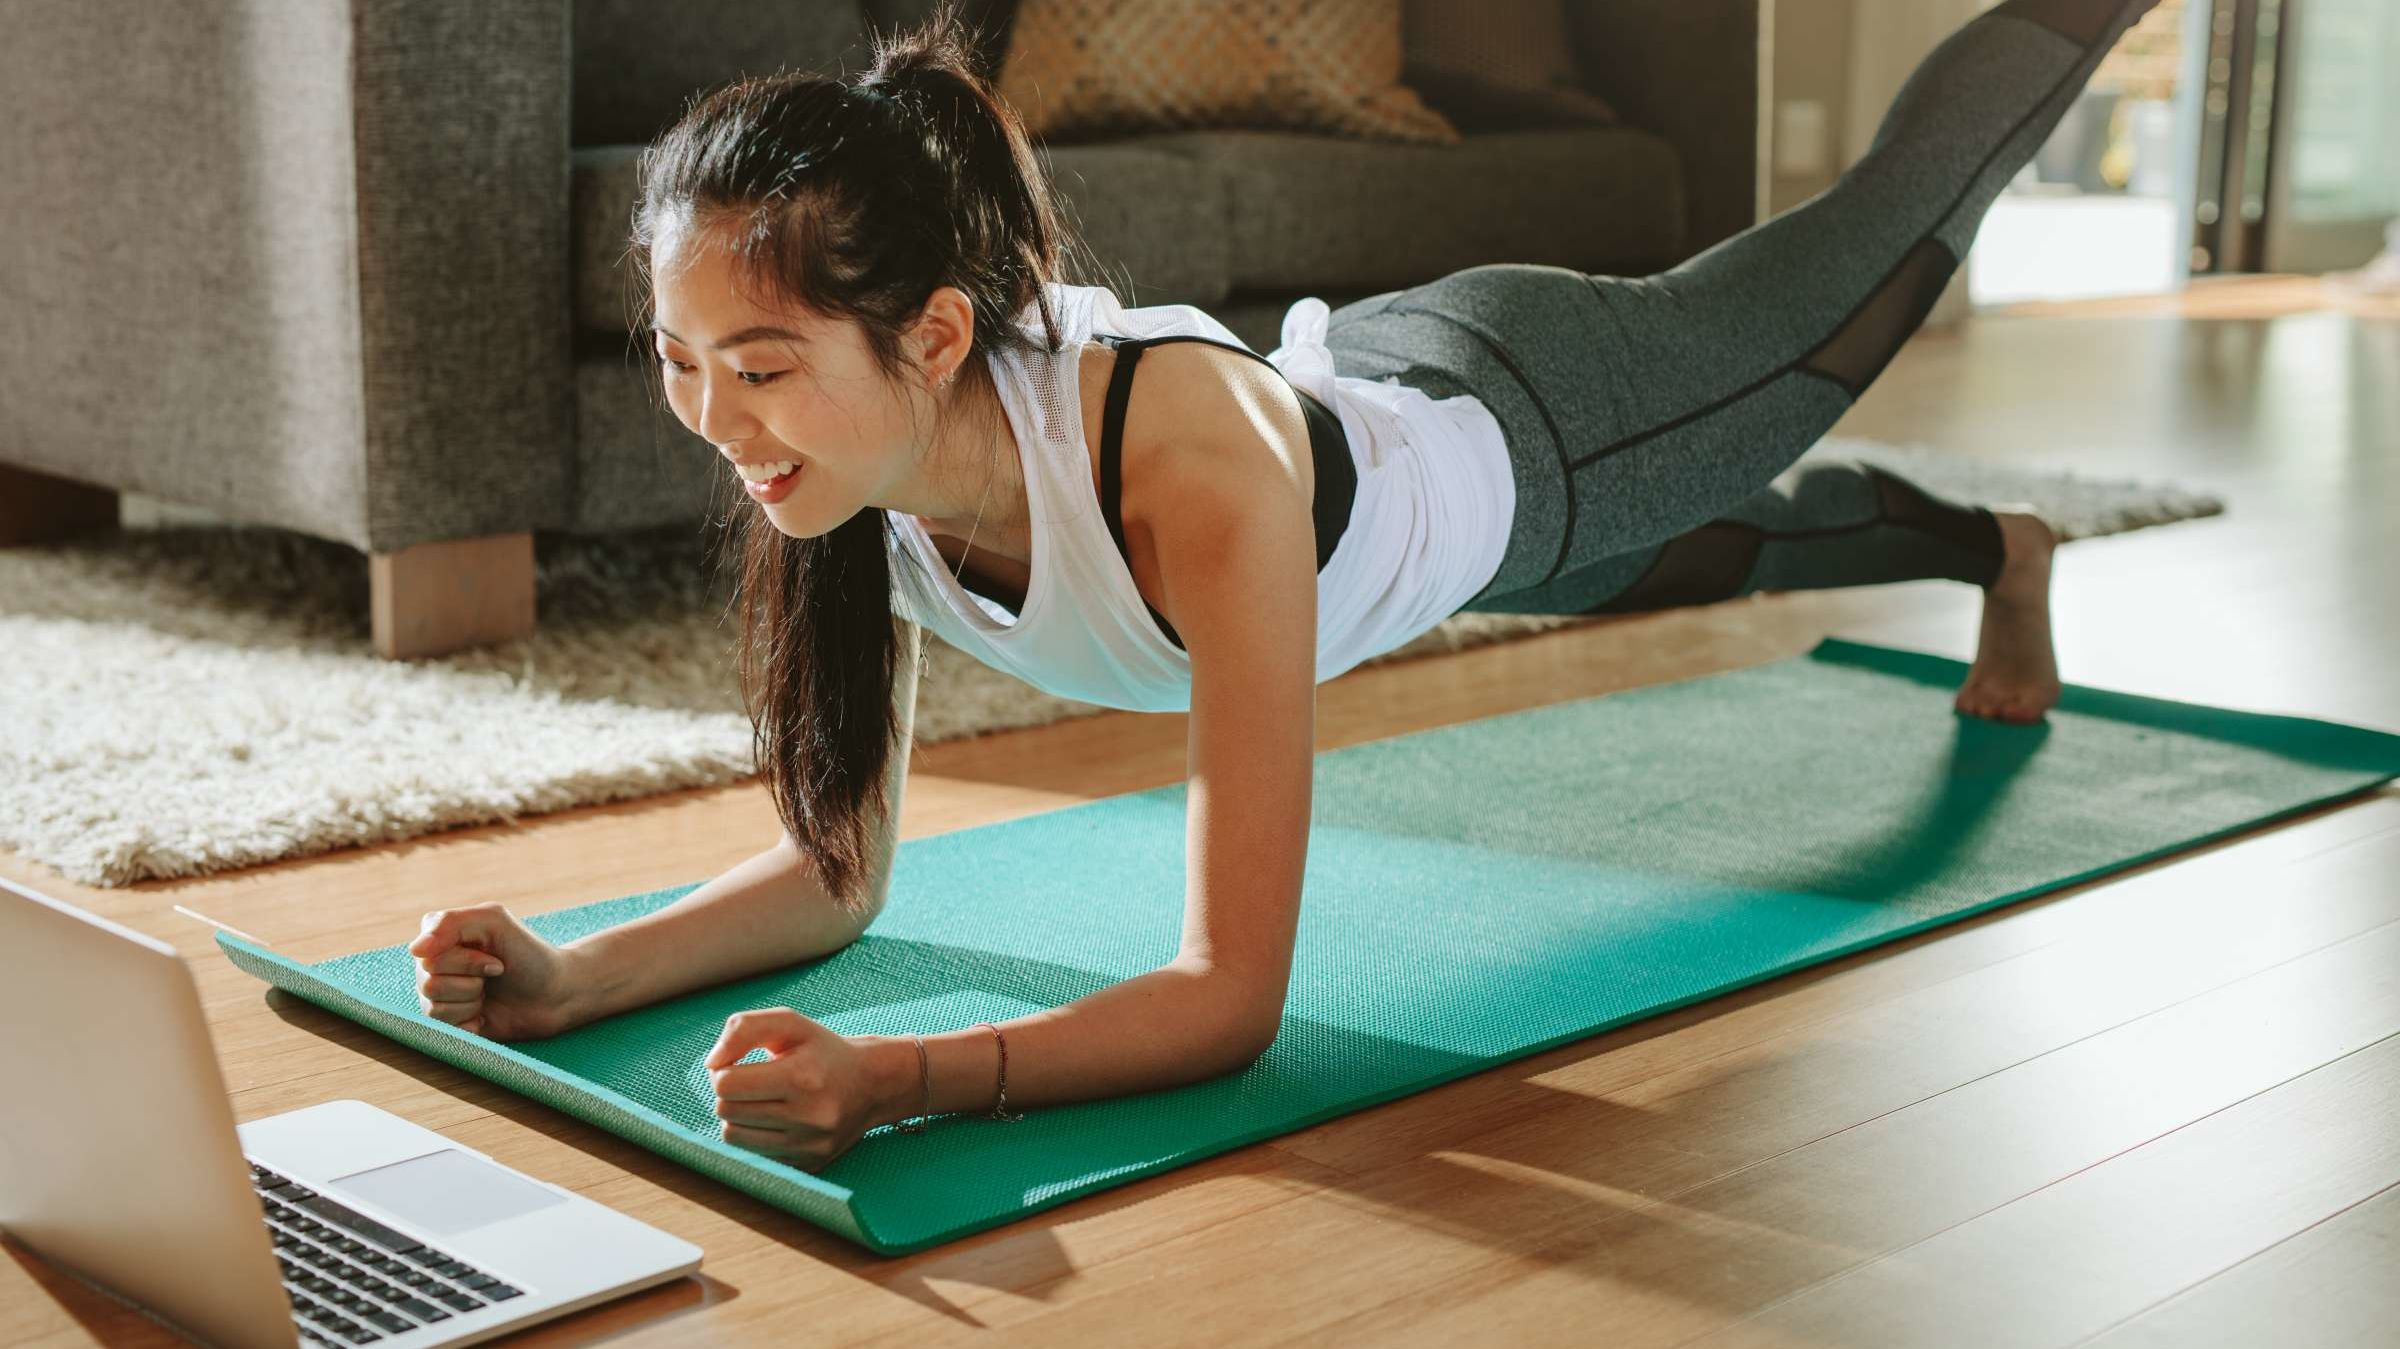 11 Boredom-Busting Classes and Activities You Can Do at Home